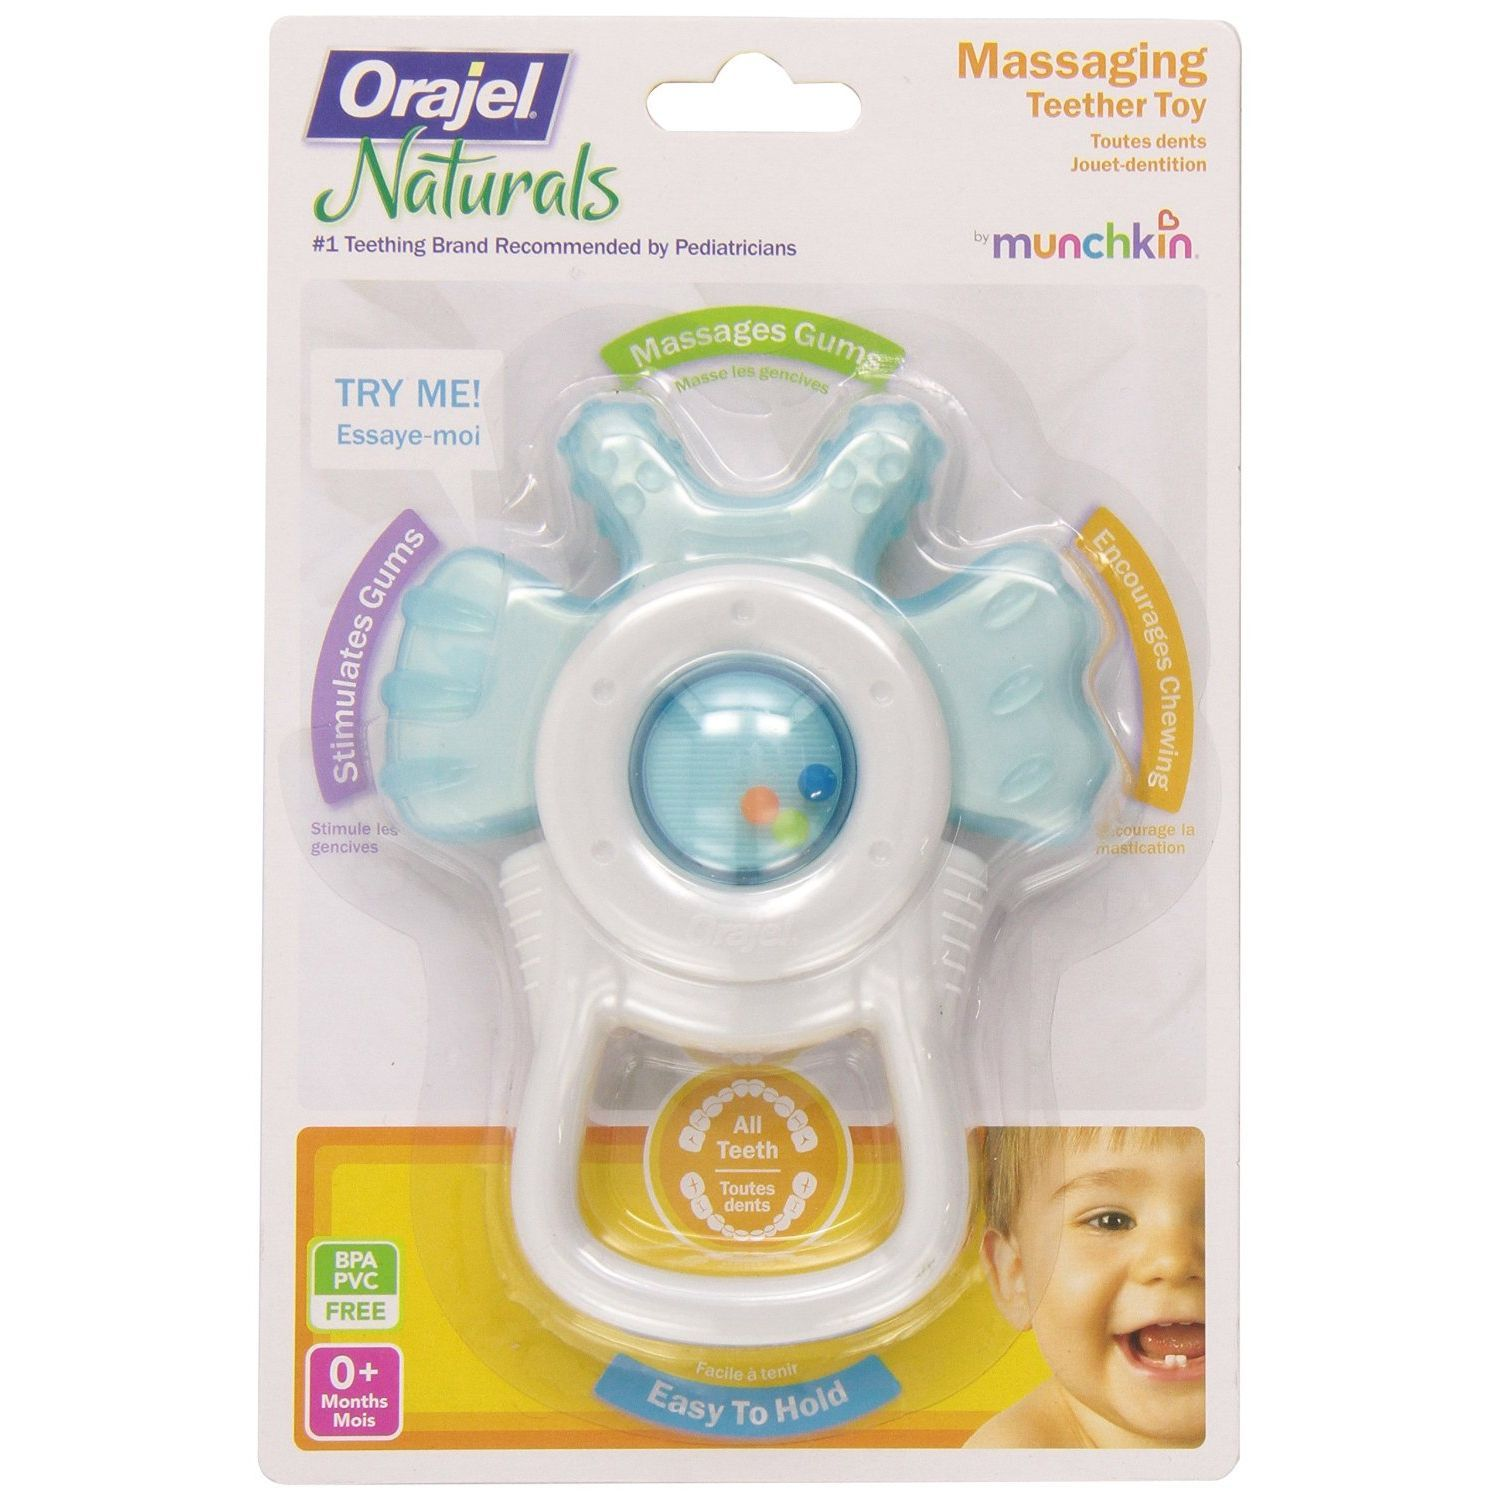 Munchkin Orajel Massaging Teether Toy with Bite Activation - Assorted Co